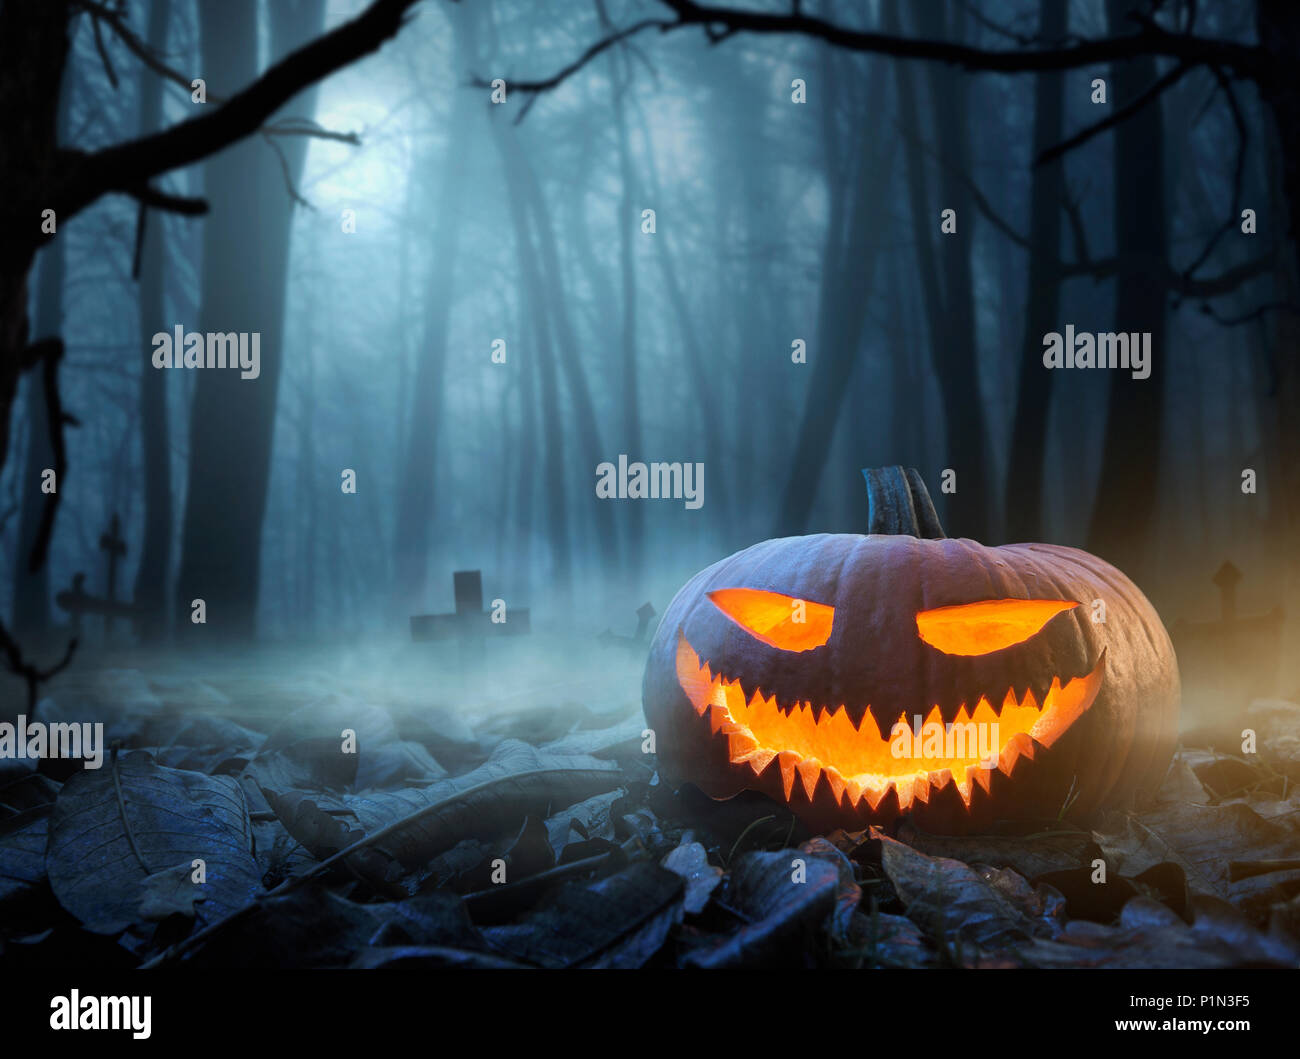 Halloween background, close up of Jack o Lantern pumpkin in the spooky forest at night with copy space - Stock Image